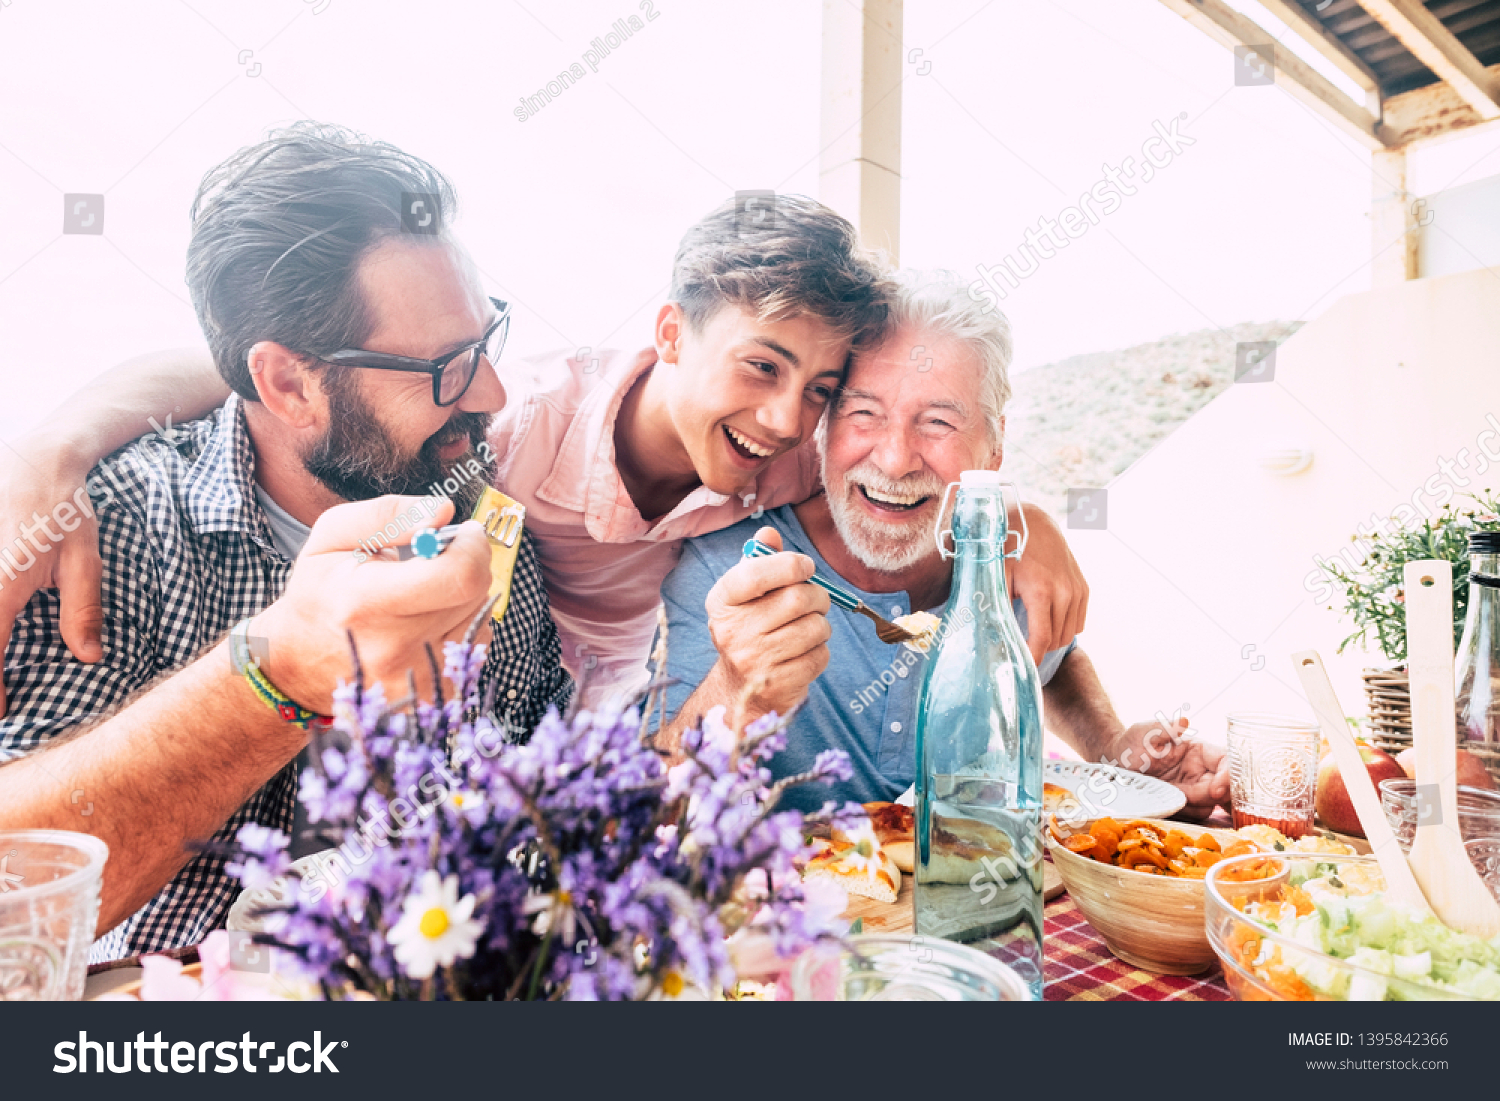 Happy people family concept laugh and have fun together with three different generations ages : grandfather father and young teenager son all together eating at lunch #1395842366